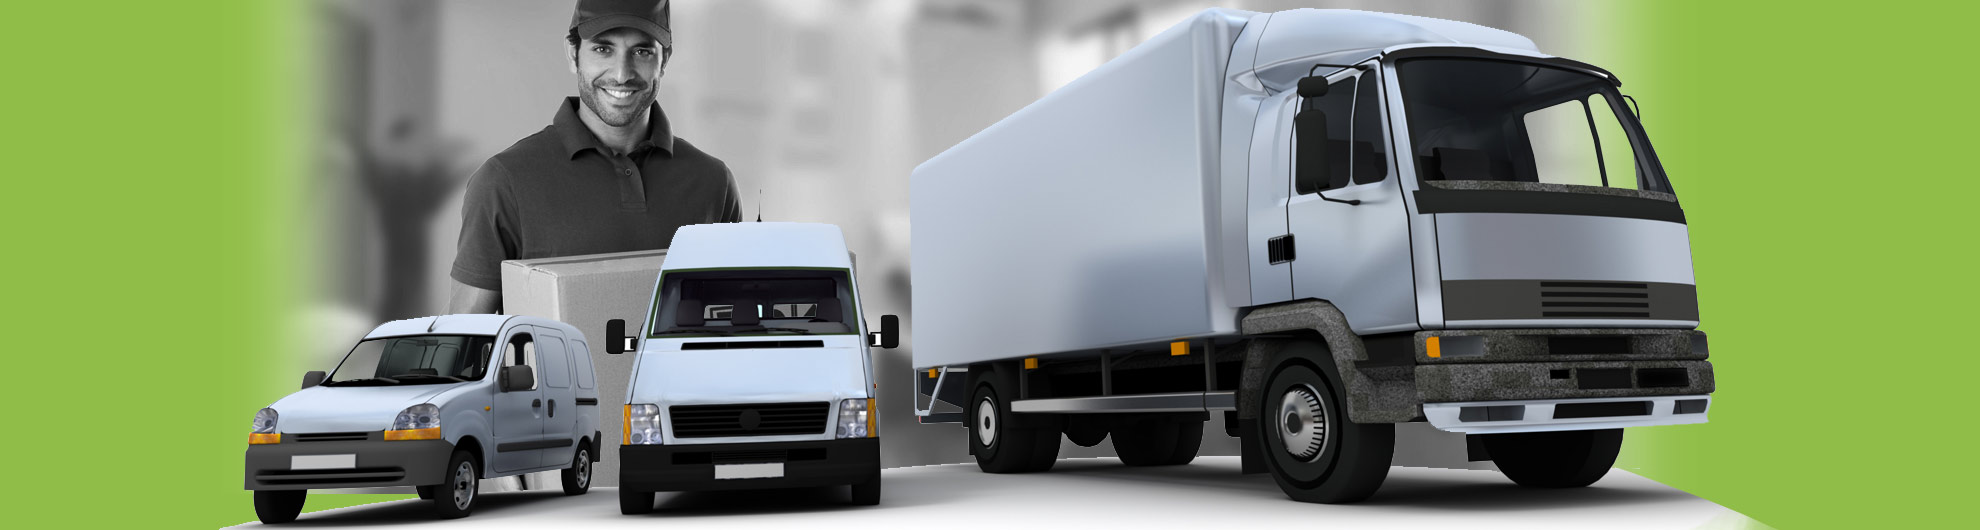 Xiangtan  International Movers - Shipping Companies